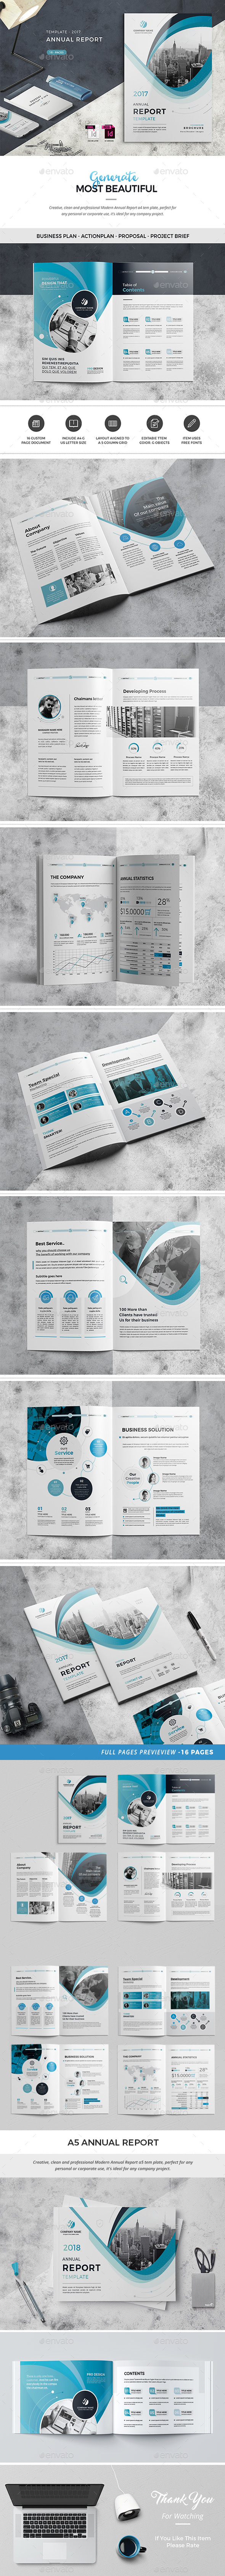 Annual Report Template 01 - Corporate Brochures